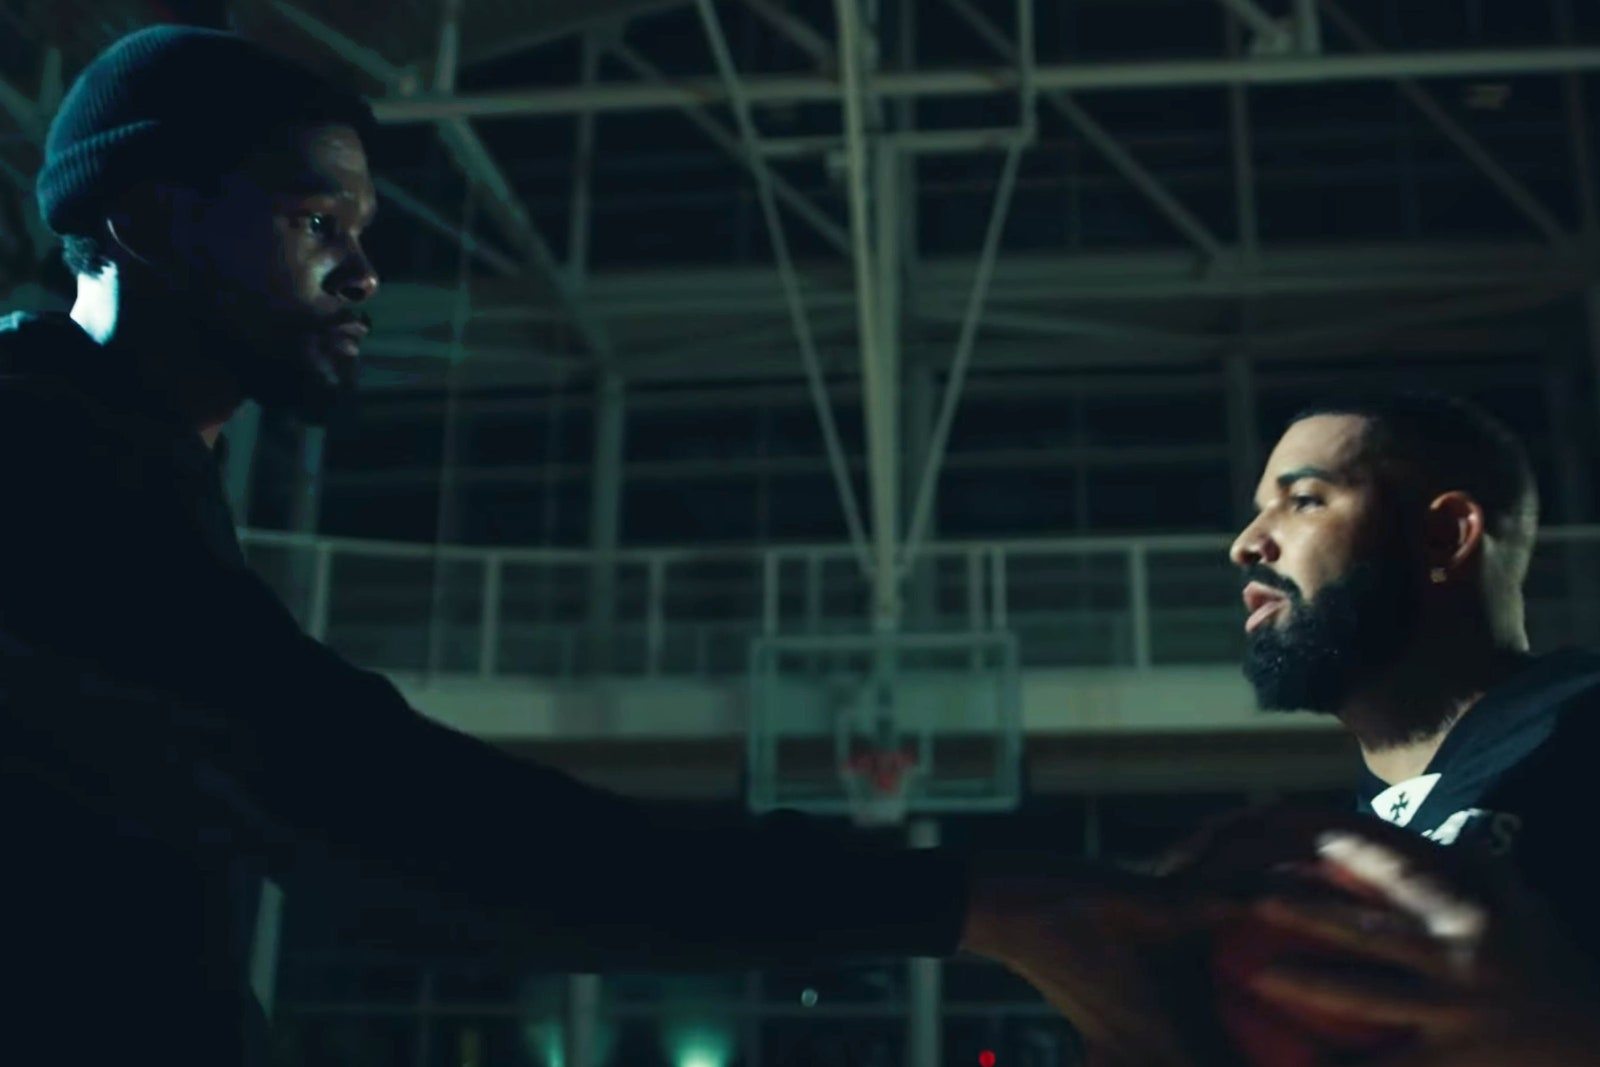 02-drake-Laugh-Now-Cry-Later-Lil-Durk-music-video-gq-august-2020